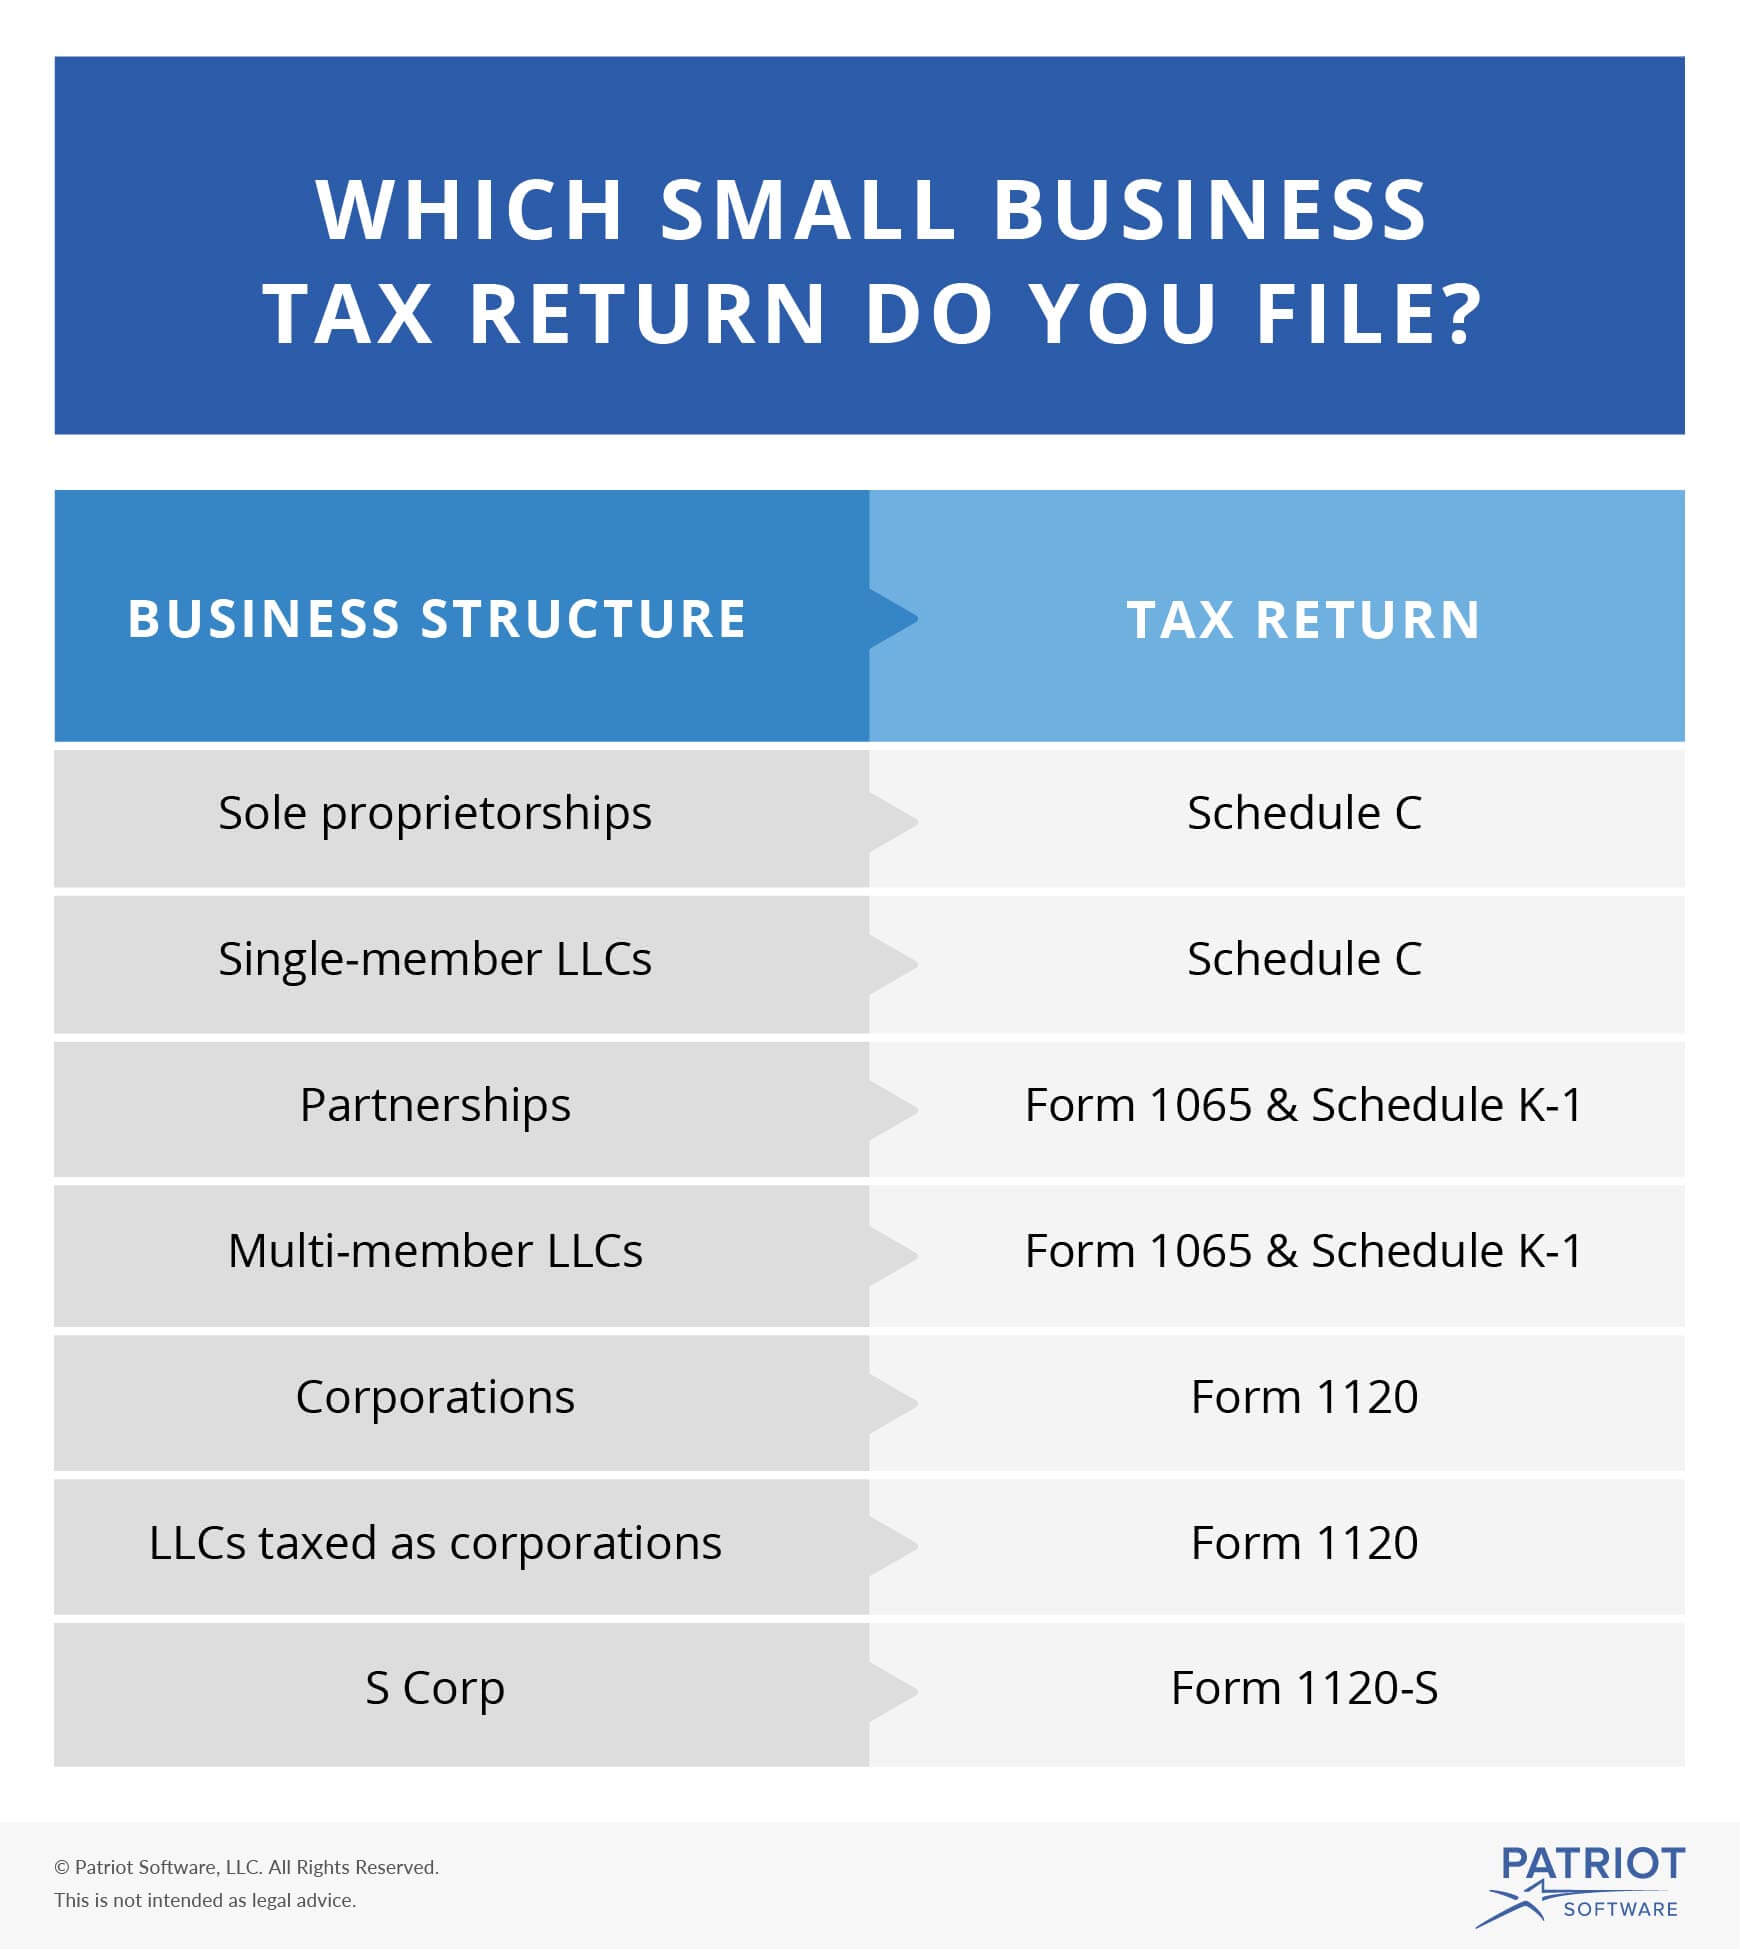 form 1065 corporation  Small Business Tax Preparation Checklist | How to Prepare ...